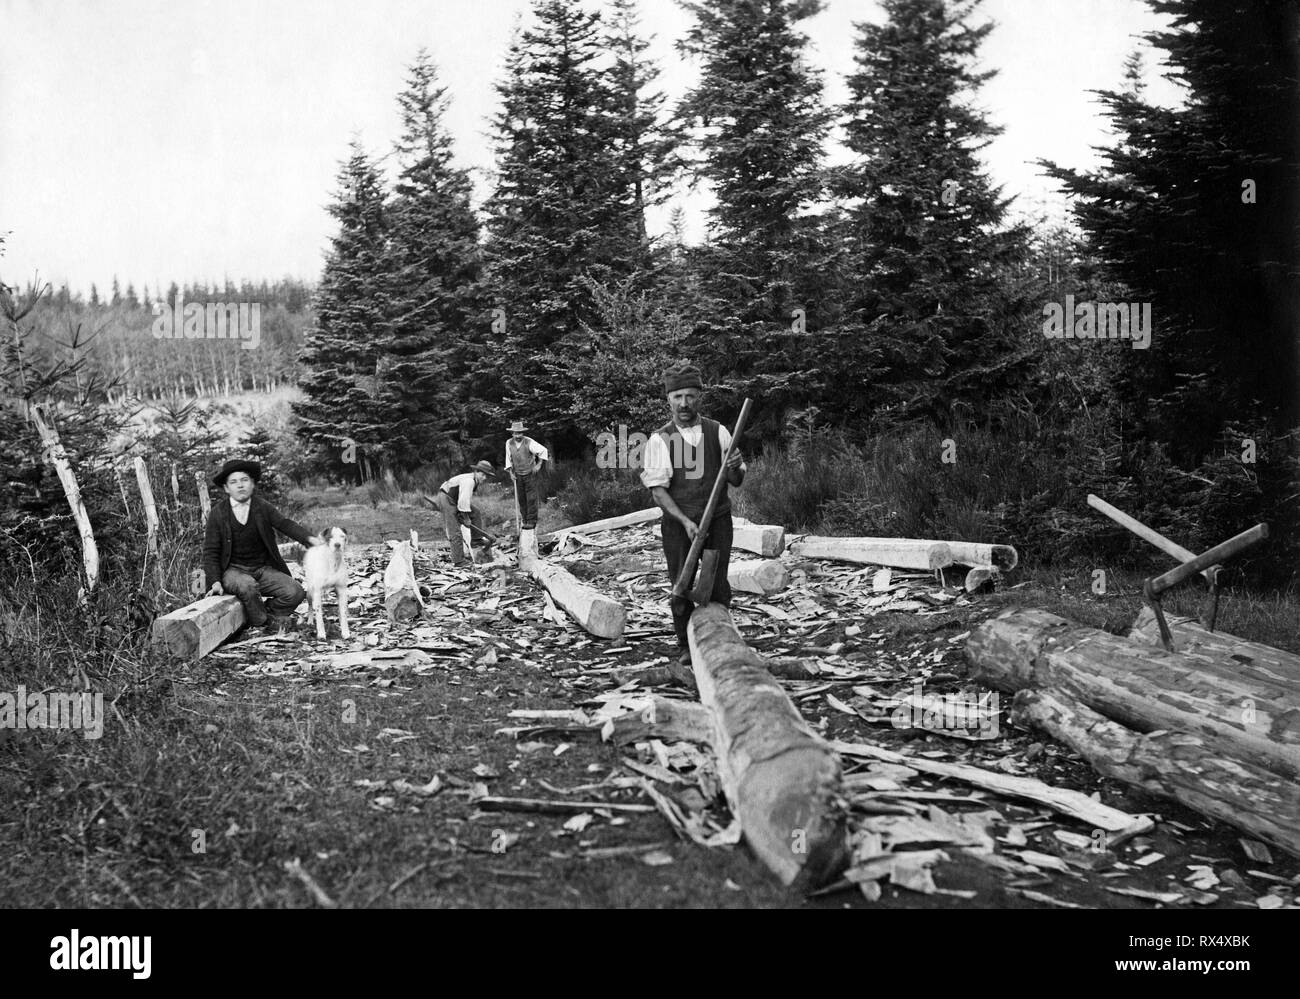 squaring cuts trunks, reggello 1910-20 - Stock Image